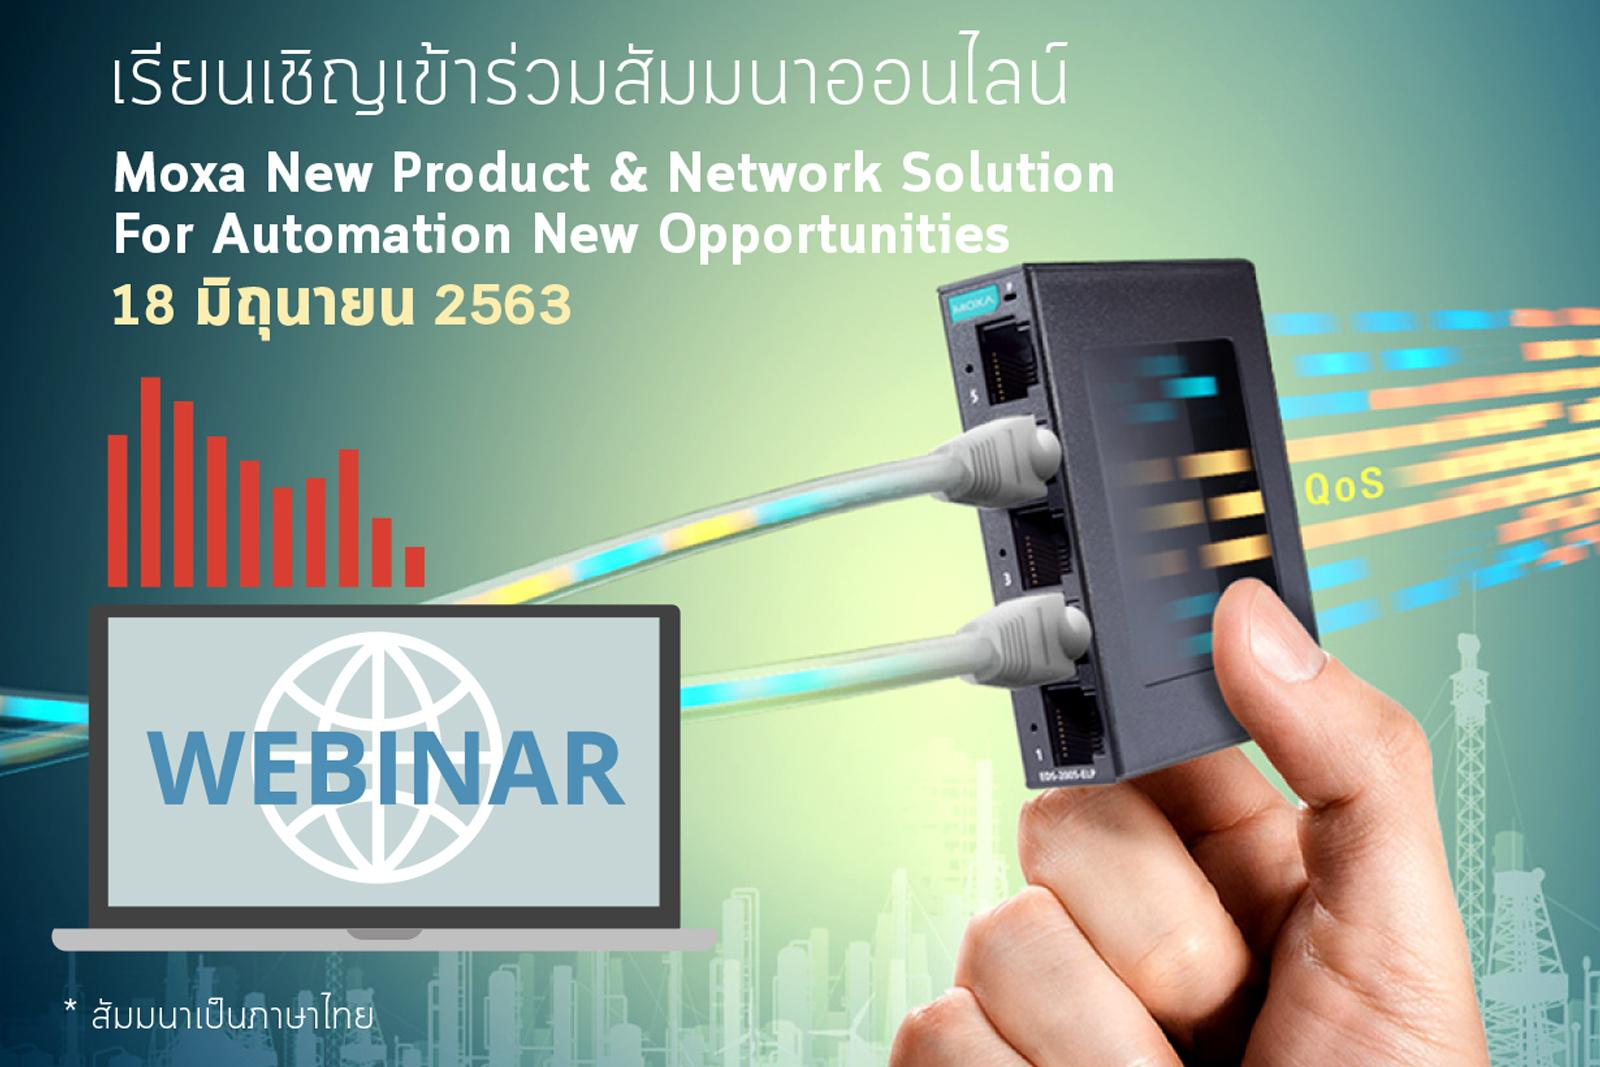 เชิญร่วมสัมมนาออนไลน์ : Moxa New Product & Network Solution for Automation New Opportunities